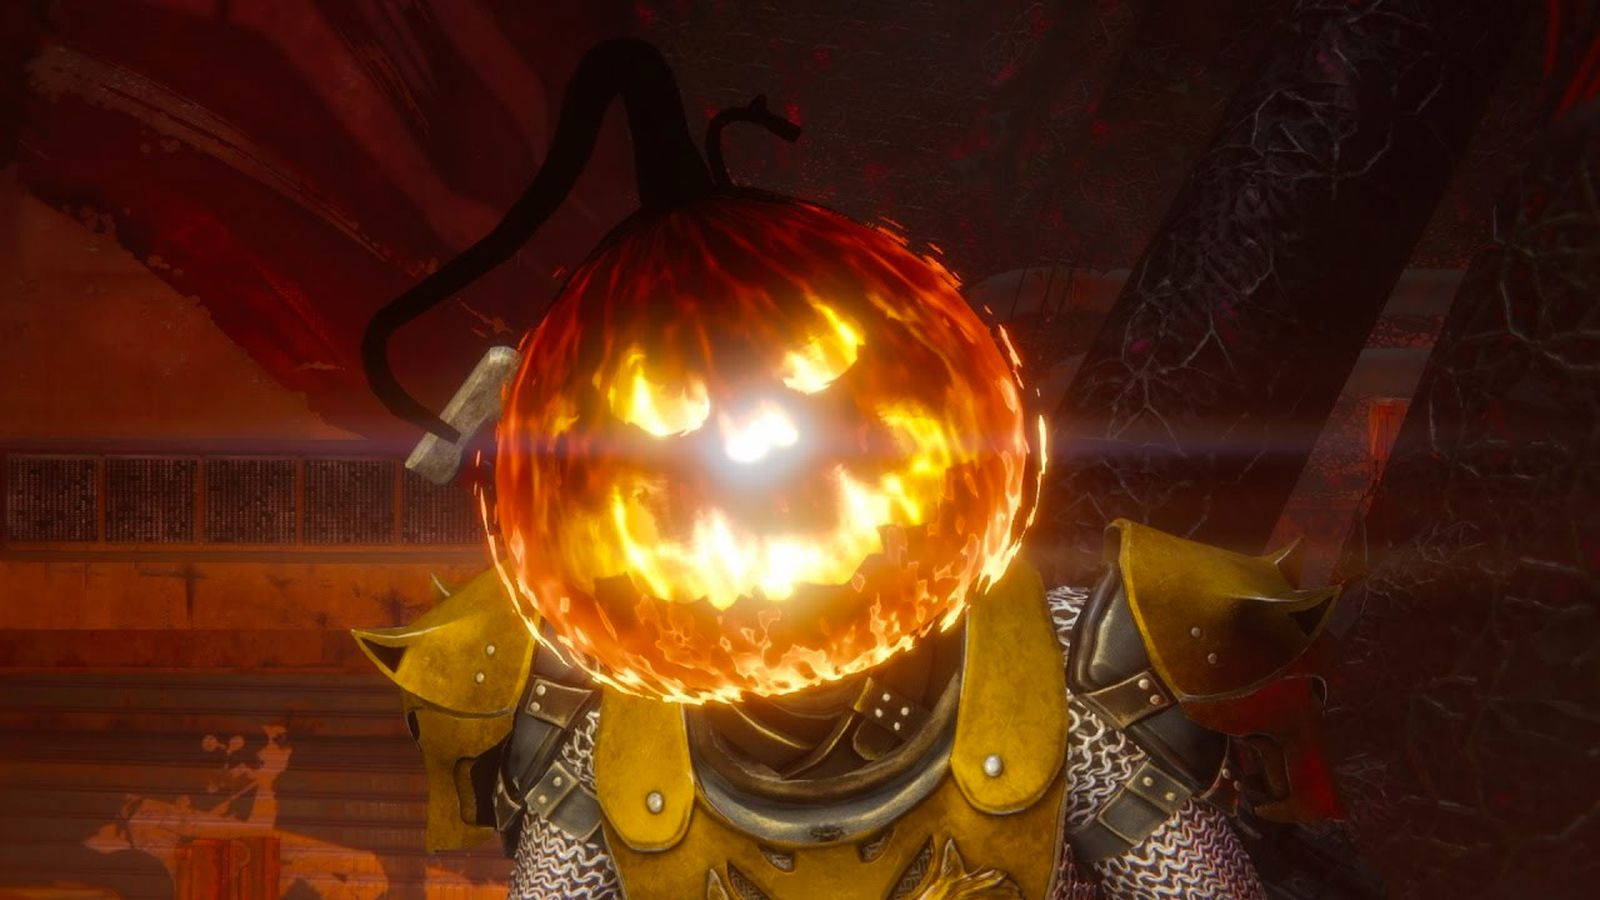 Destiny's Halloween event kicks off Oct. 25 - Polygon